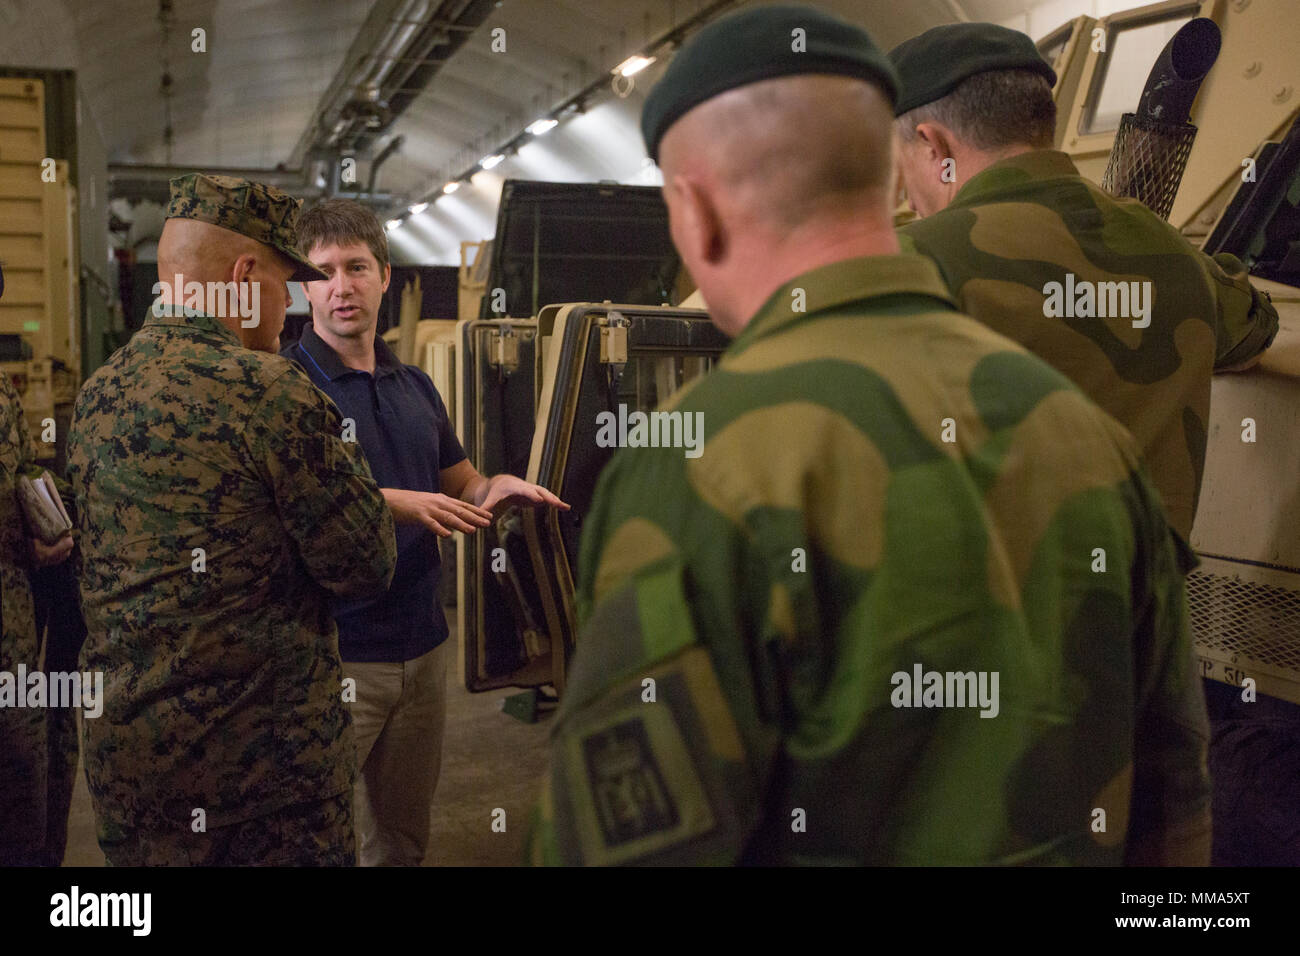 Commandant of the Marine Corps Gen. Robert B. Neller, left, tours facilities in Frigård, Norway, Sept. 29, 2017. Neller visited Norway to strengthen the military-to-military relationship between the two countries. (U.S. Marine Corps photo by Cpl. Samantha K. Braun) Stock Photo